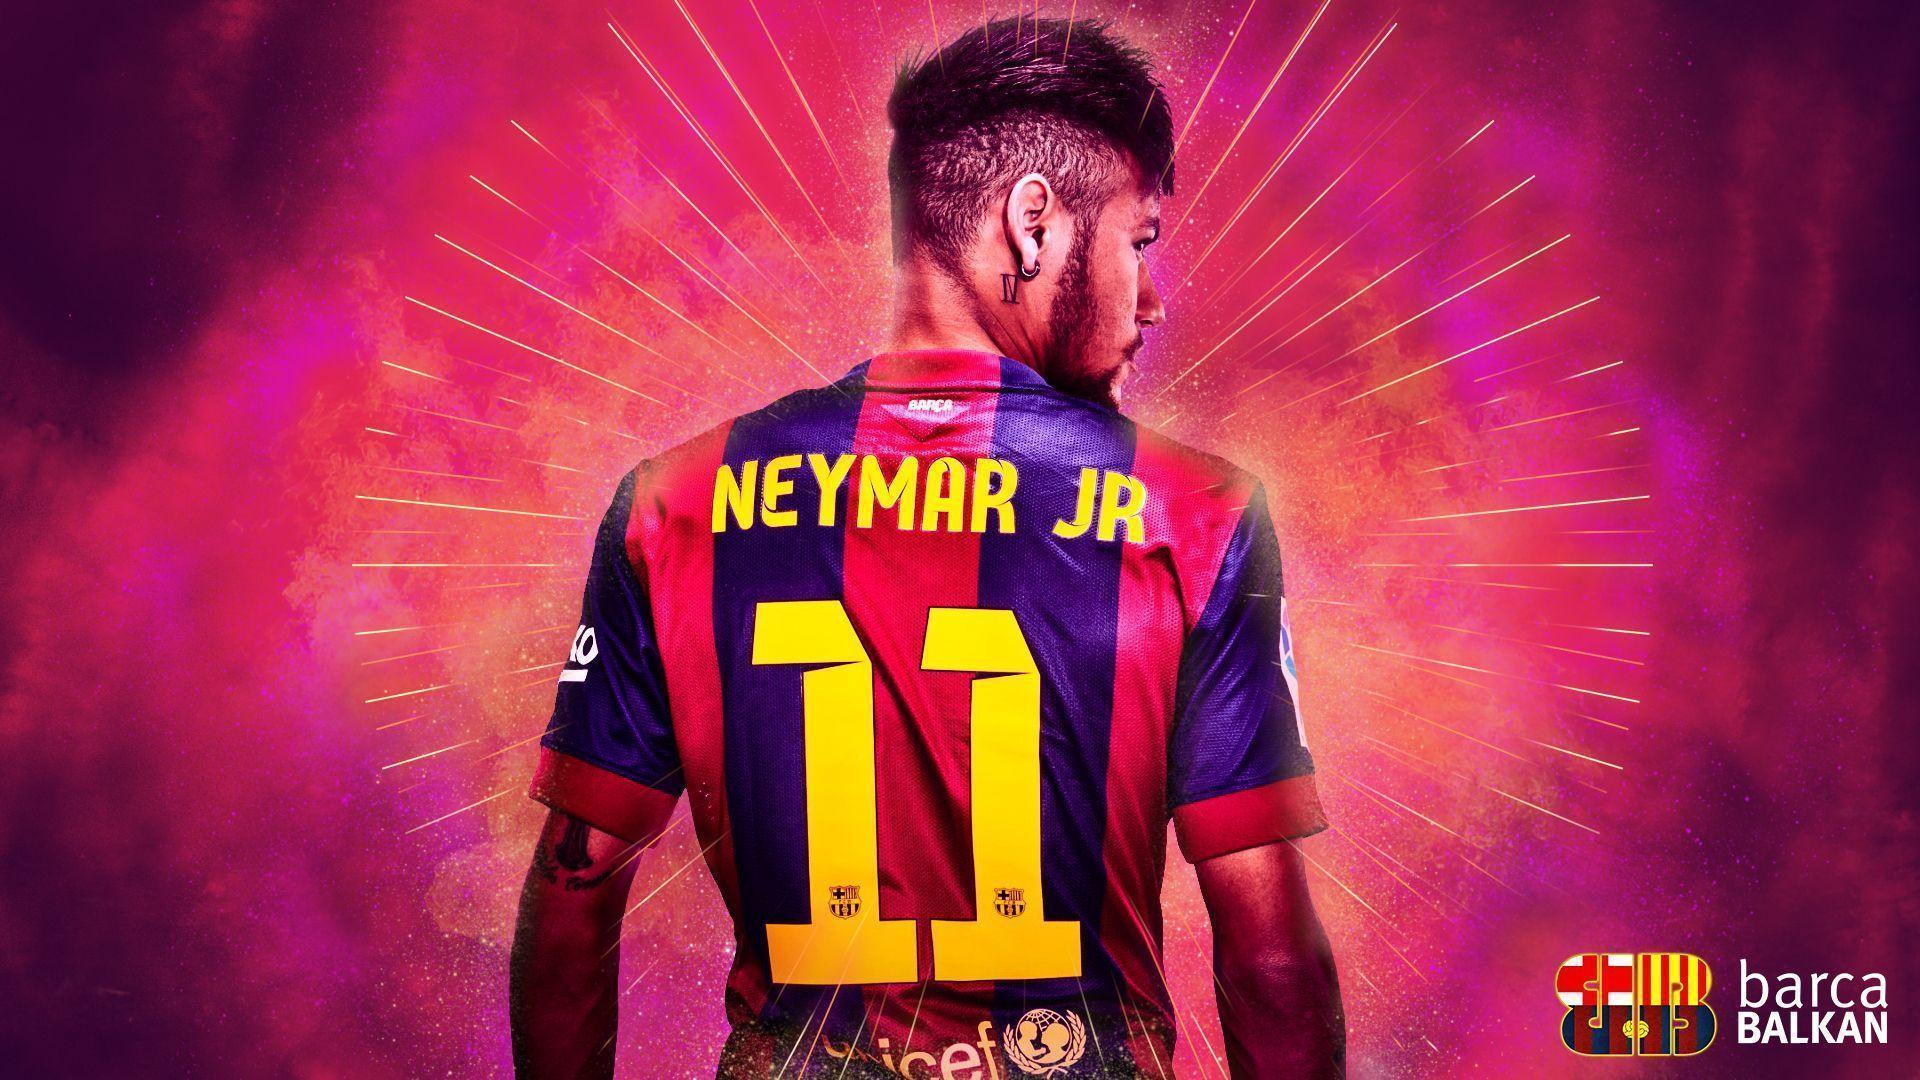 Neymar 2016 Wallpapers - Wallpaper Cave